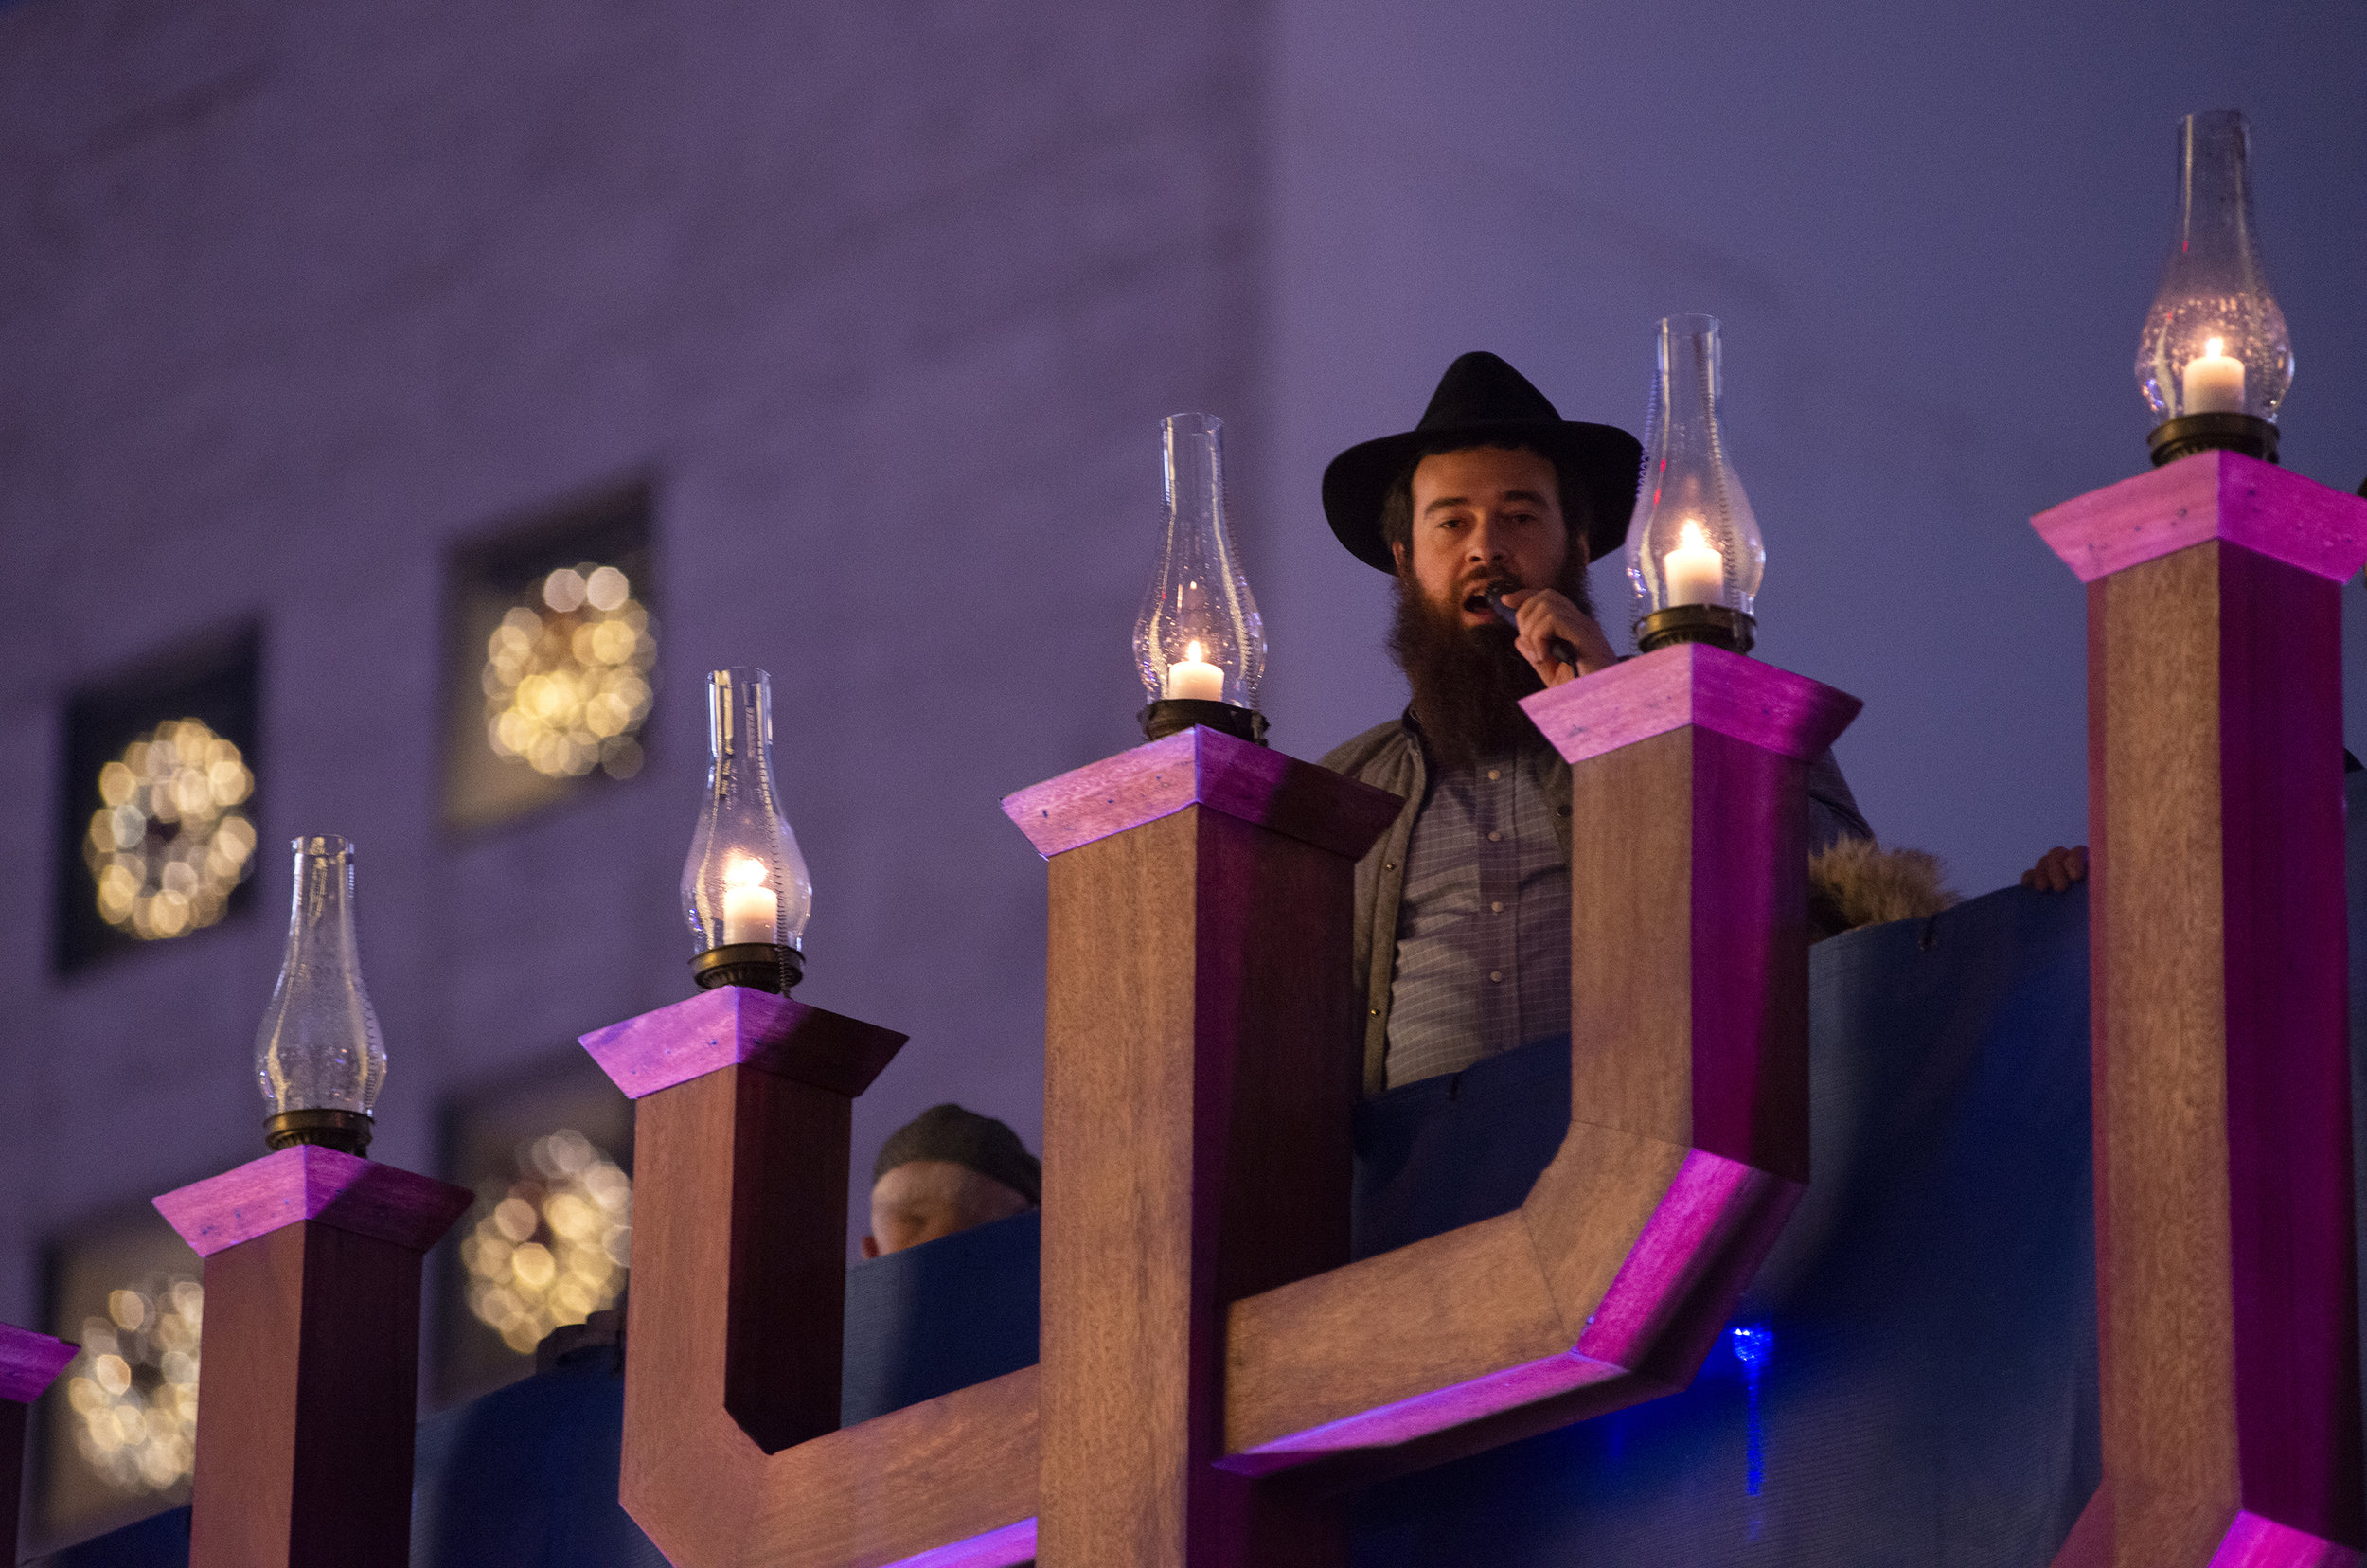 Rabbi Moshe Langer leads a crowd in the singing of holiday tunes atop the 25-foot-tall menorah in San Francisco, Ca. on December 6, 2018, the fifth day of Hanukkah. Rabbi Langer opened the celebration by lighting the massive menorah, which has illuminated San Francisco's Union Square each Hanukkah since 1975. Photo by David Andrews.